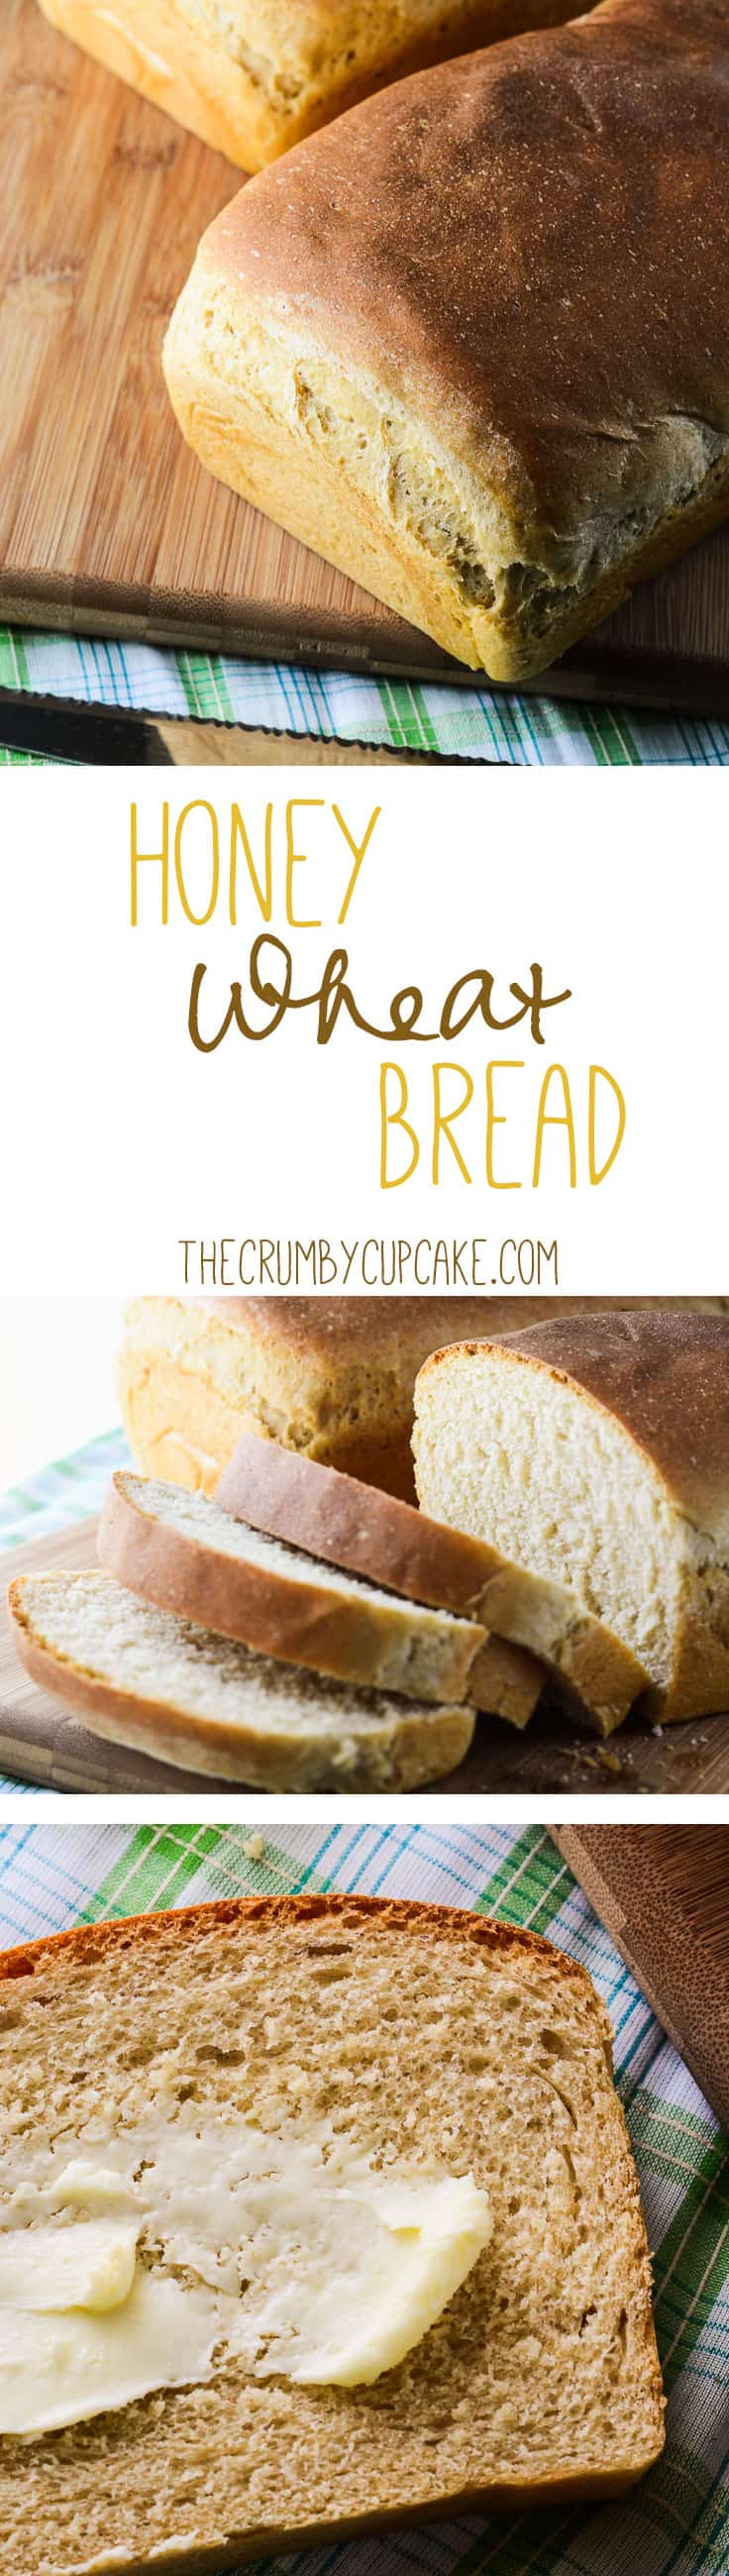 A simple, healthy, delicious honey wheat bread with a lovely browned crust and a soft, tender crumb. Perfect for all the BLTs and PB&Js in your life!